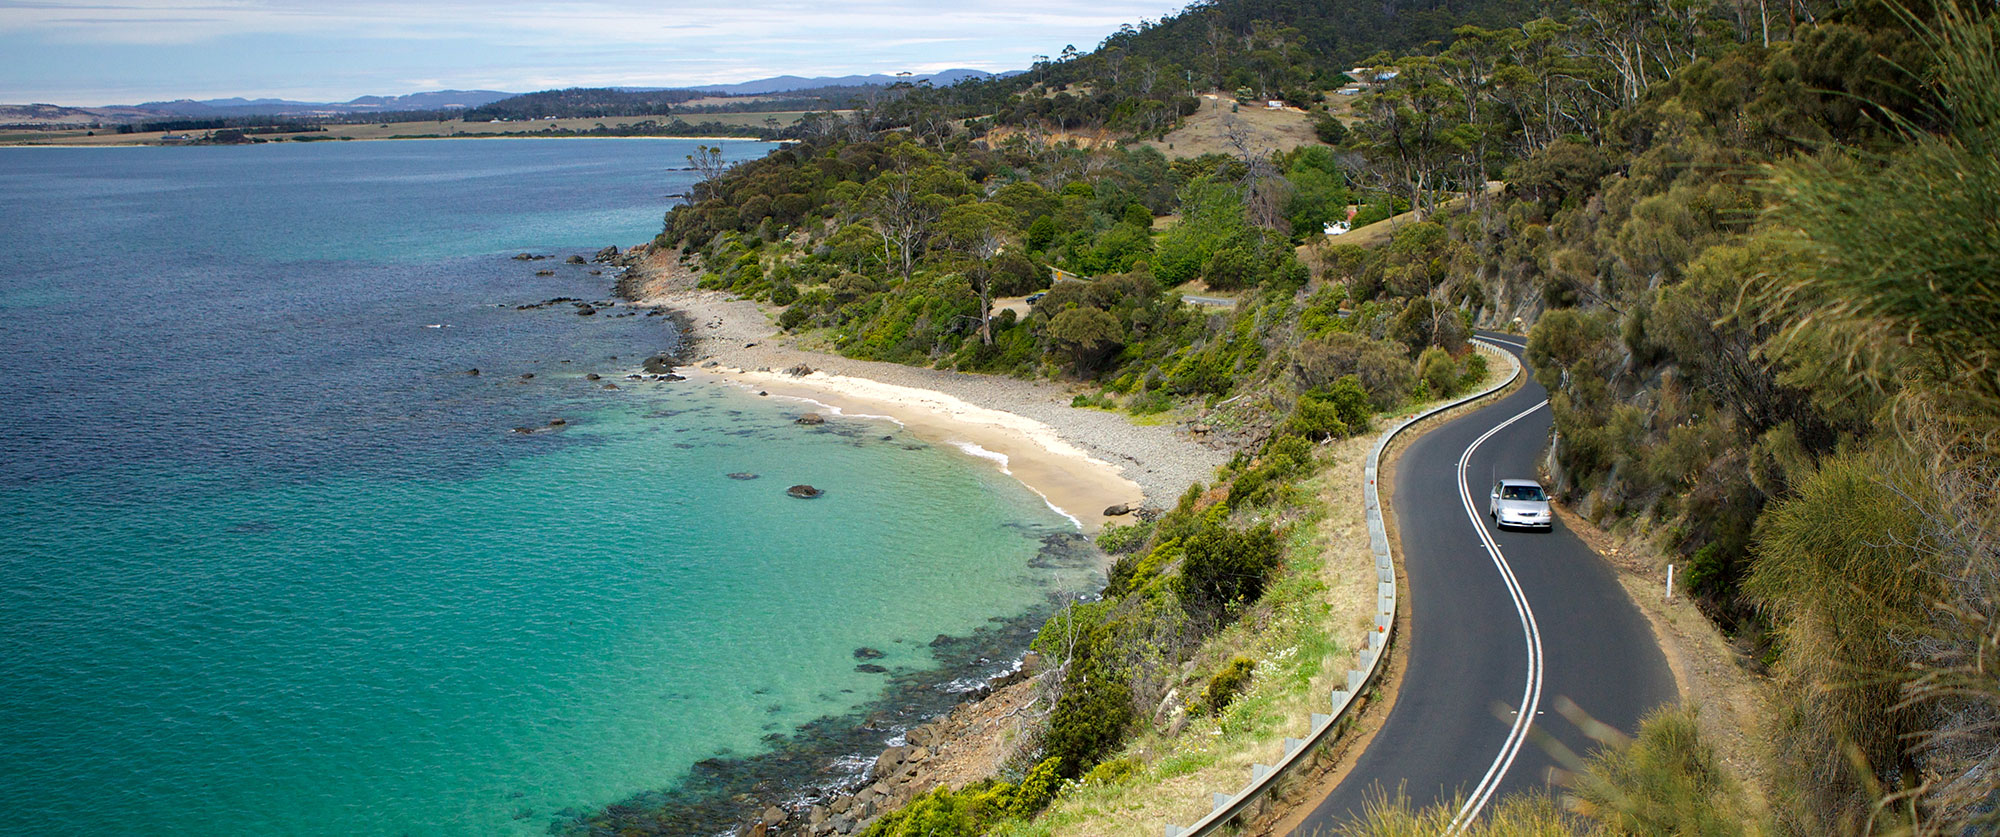 Honeymoon in Australia: Tasmania Outdoor Encounters - Scenic Drives in Tasmania